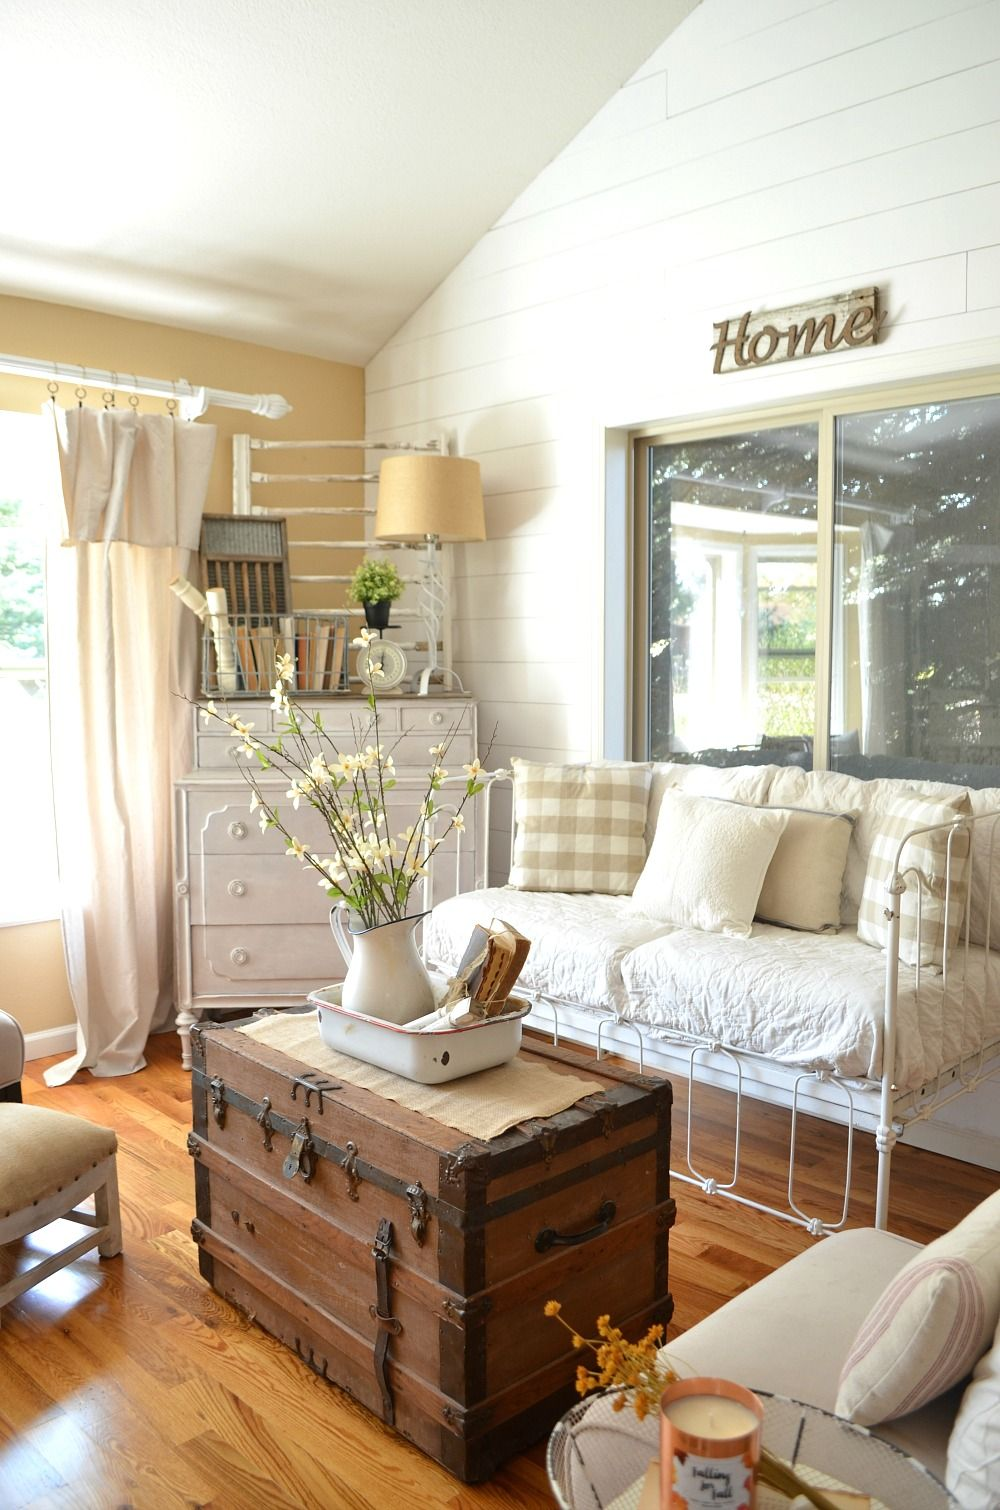 Home Decor Home Tour Farmhouse Living Room Furniture